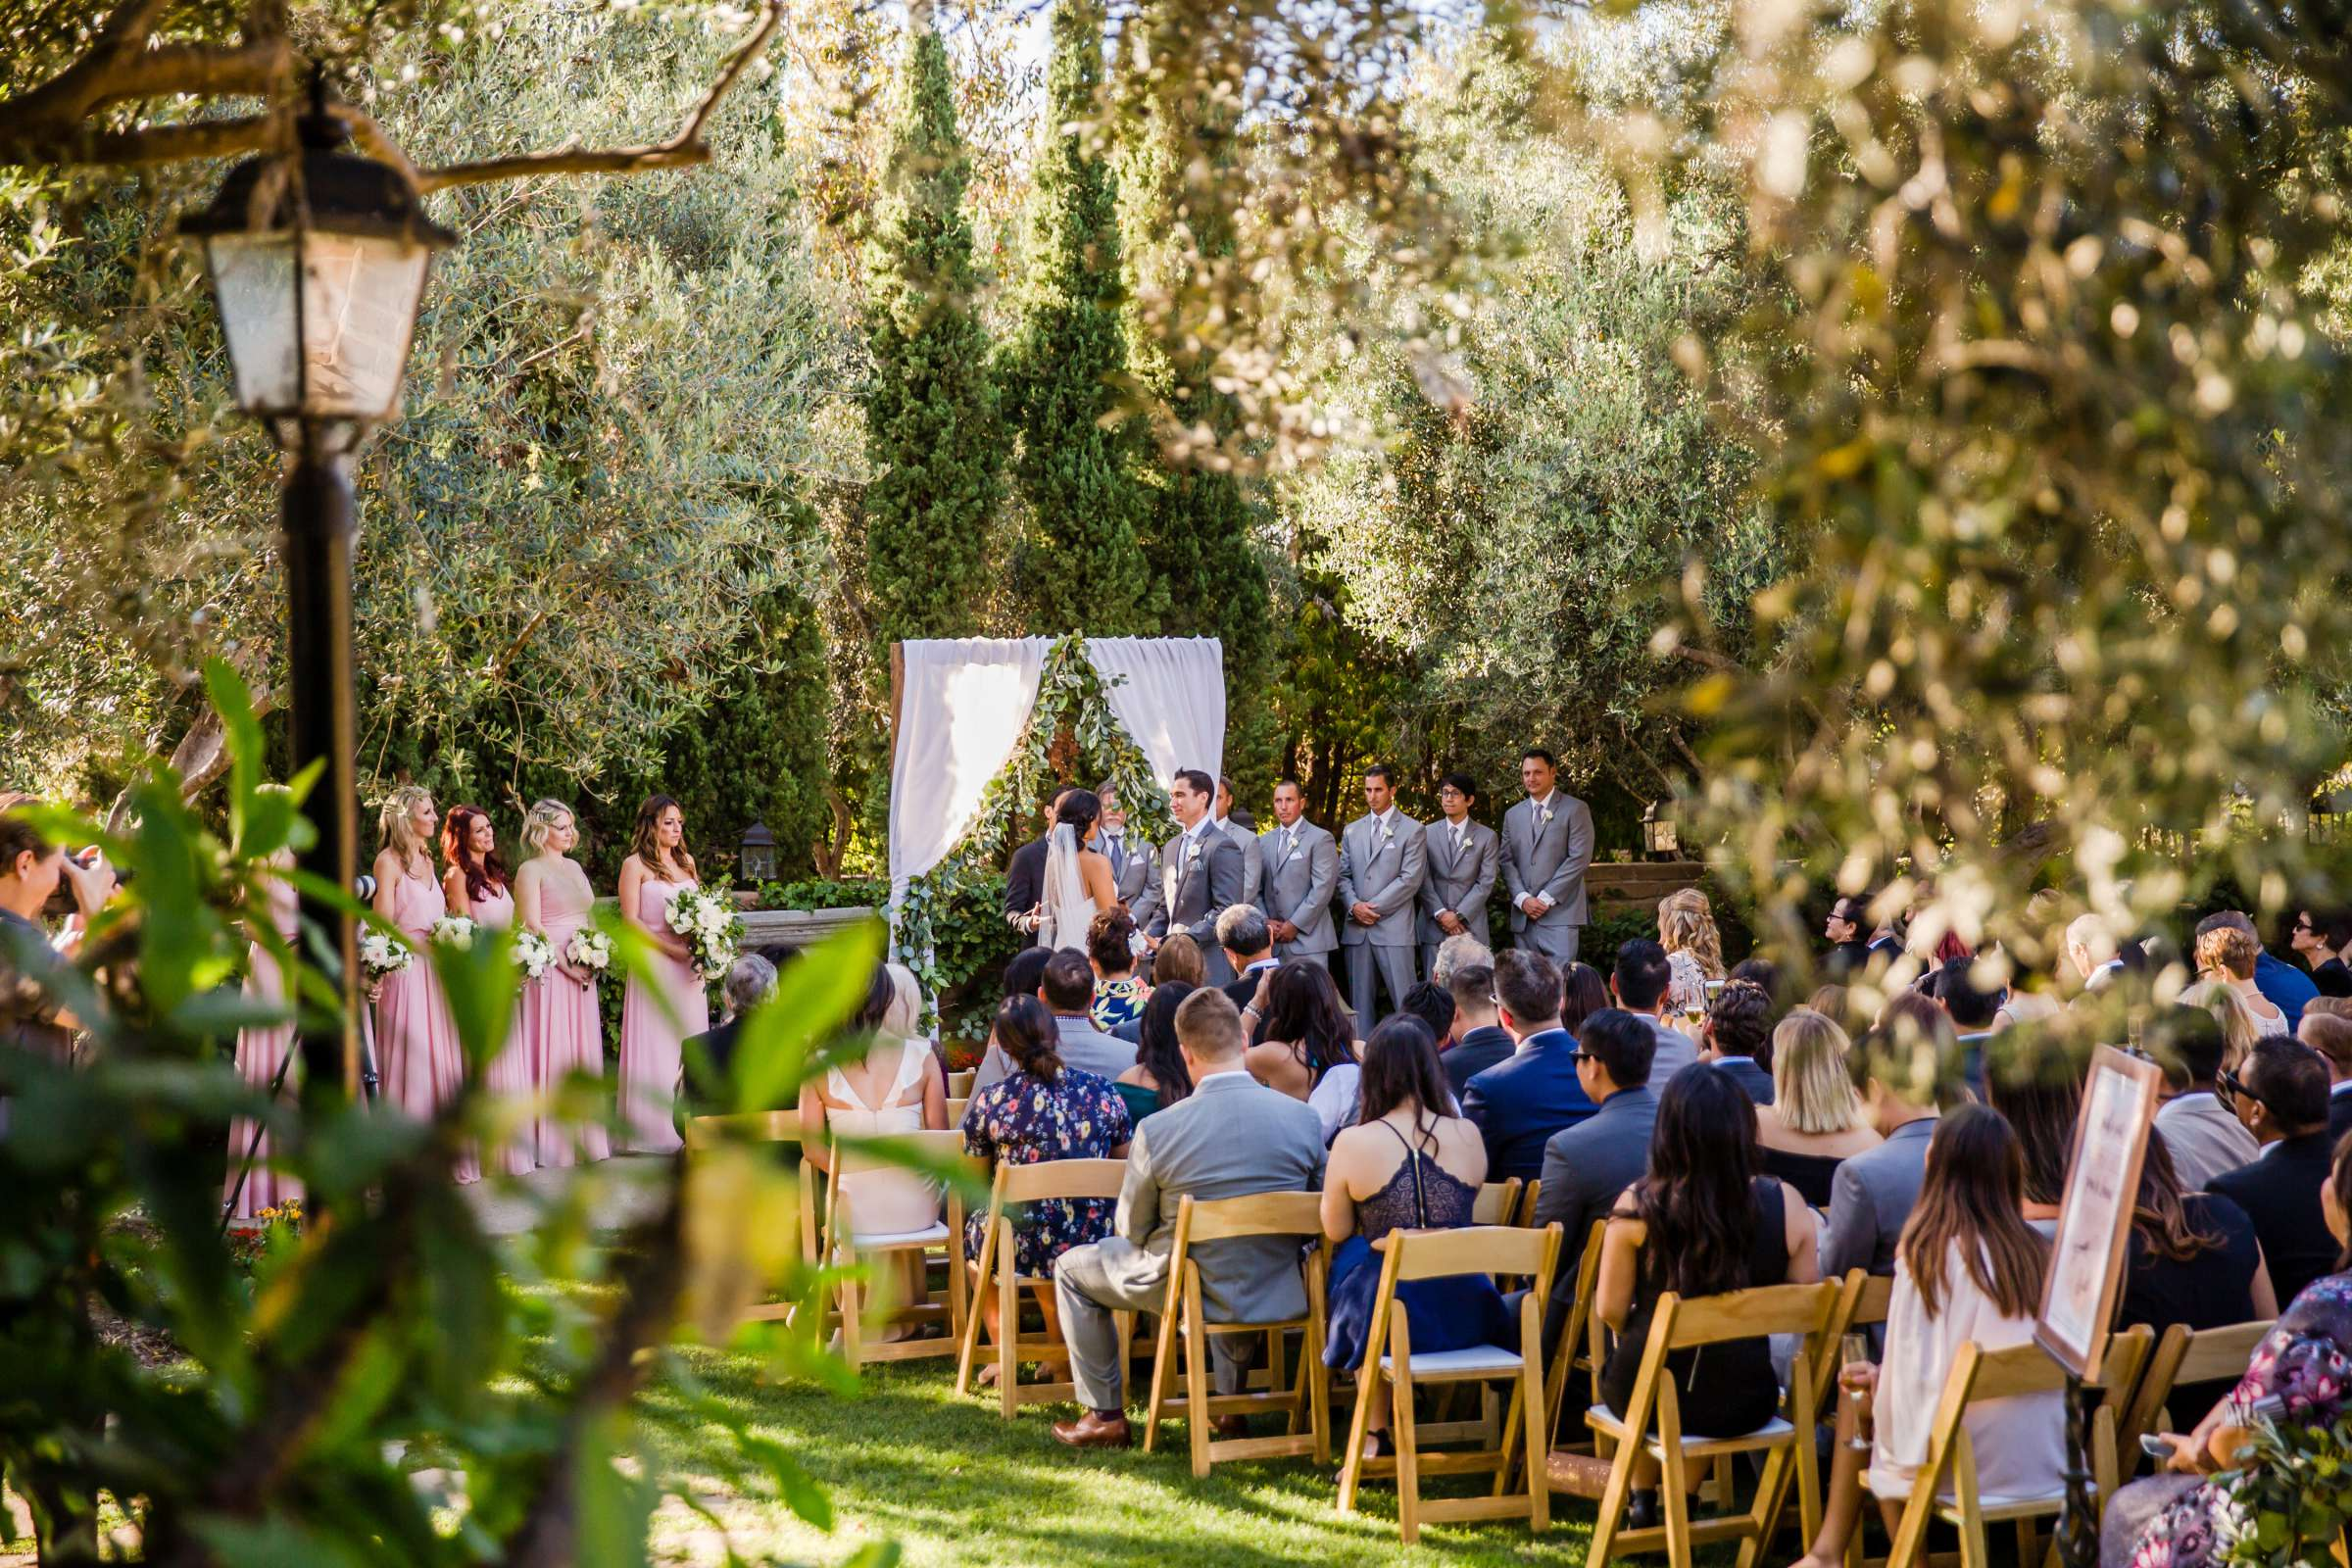 Estancia Wedding, Janet and Justin Wedding Photo #421759 by True Photography